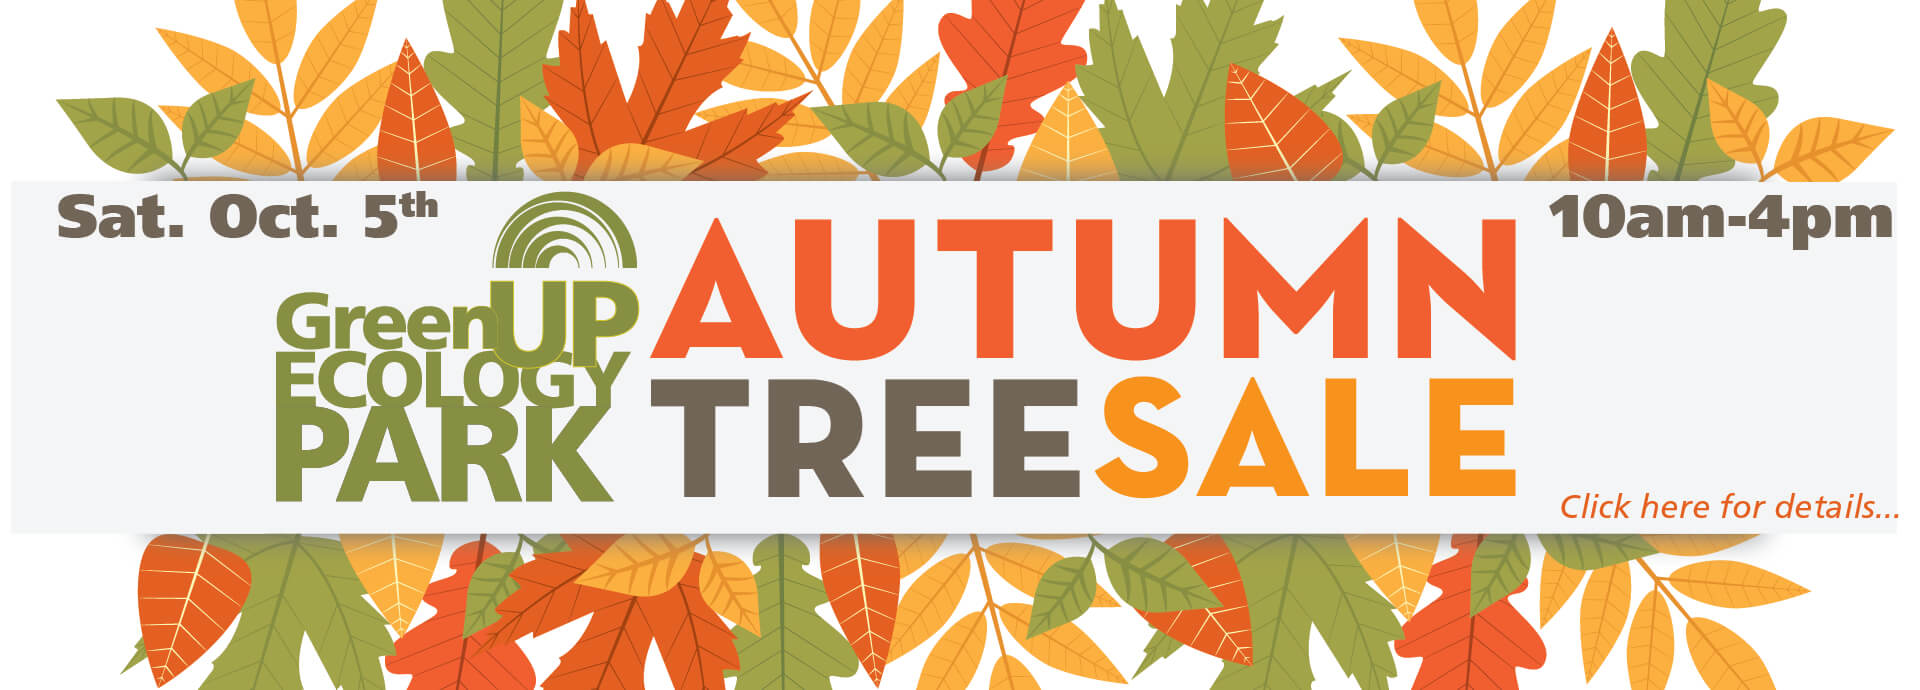 """GreenUP Ecology Park Logo beside text that reads """"Autumn Tree Sale Sat. Oct. 5th 10am-4pm"""" surrounded by decorative fall coloured leaves."""